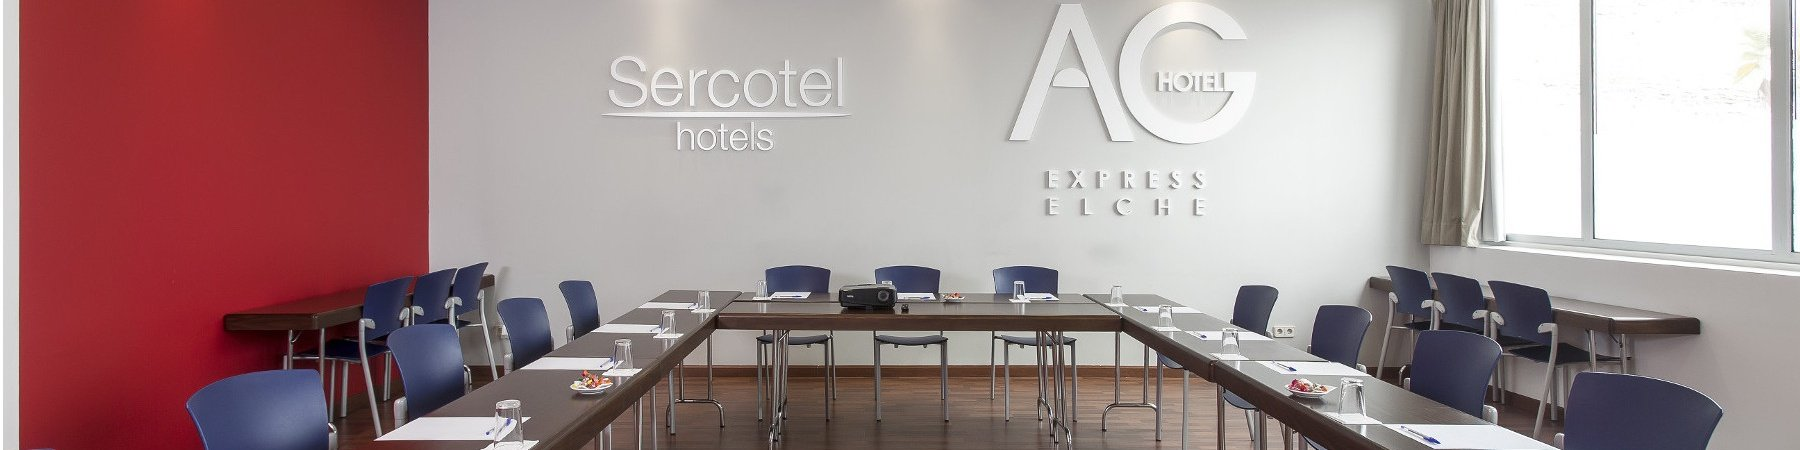 Meeting Rooms - AG Express Elche Sercotel Hotel